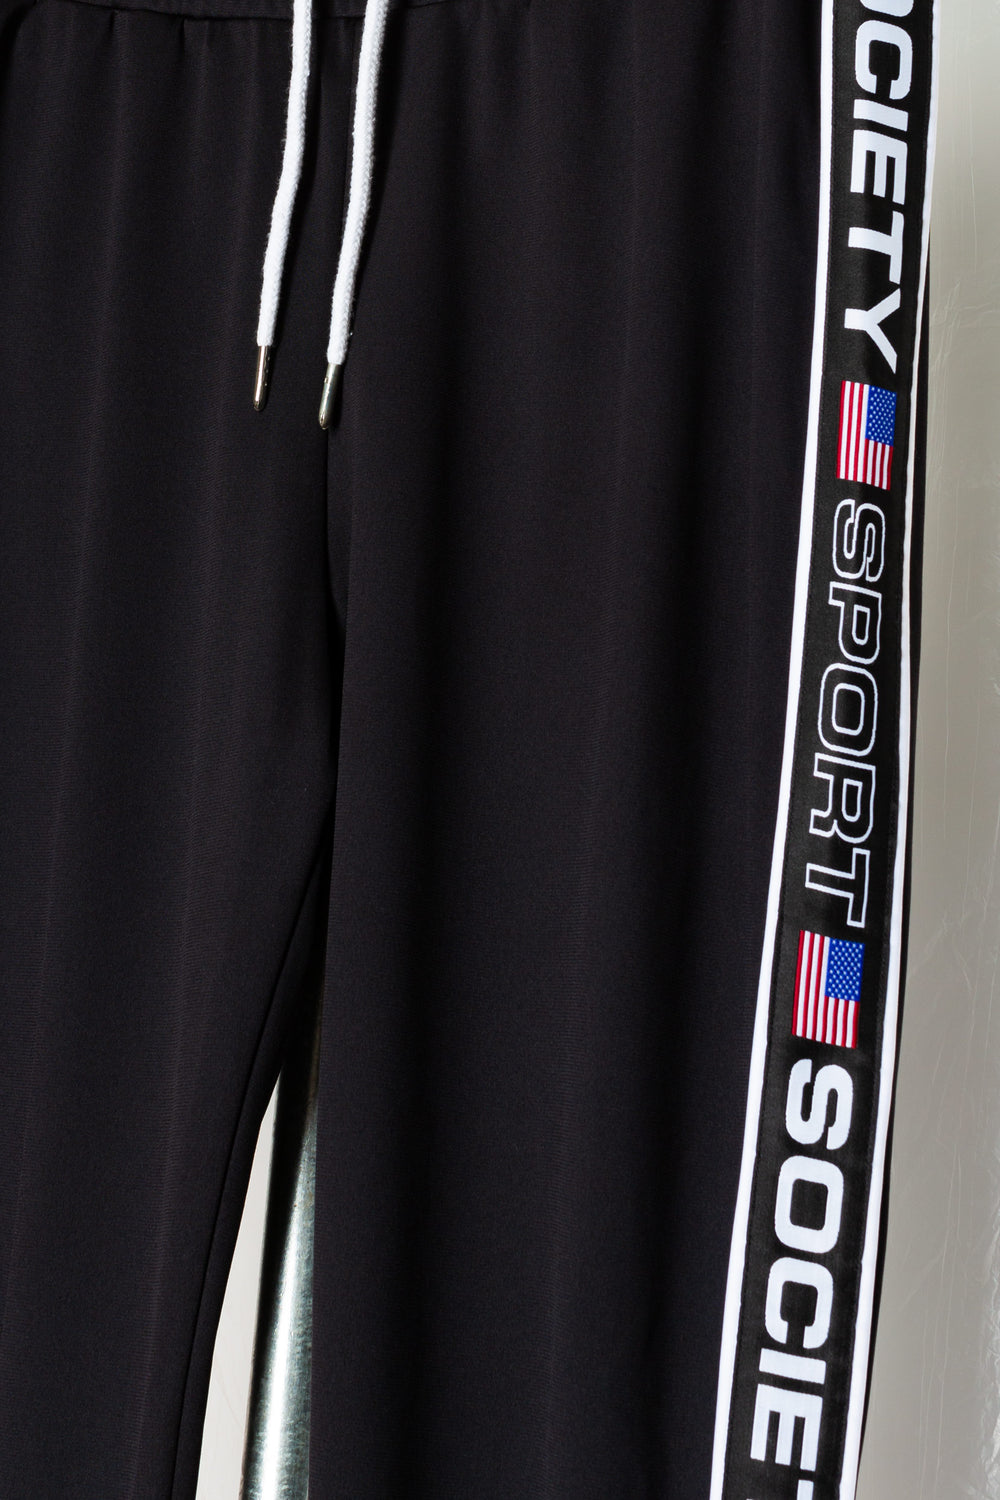 SOCIETY SPORT BLACK TAPED POLY PANTS